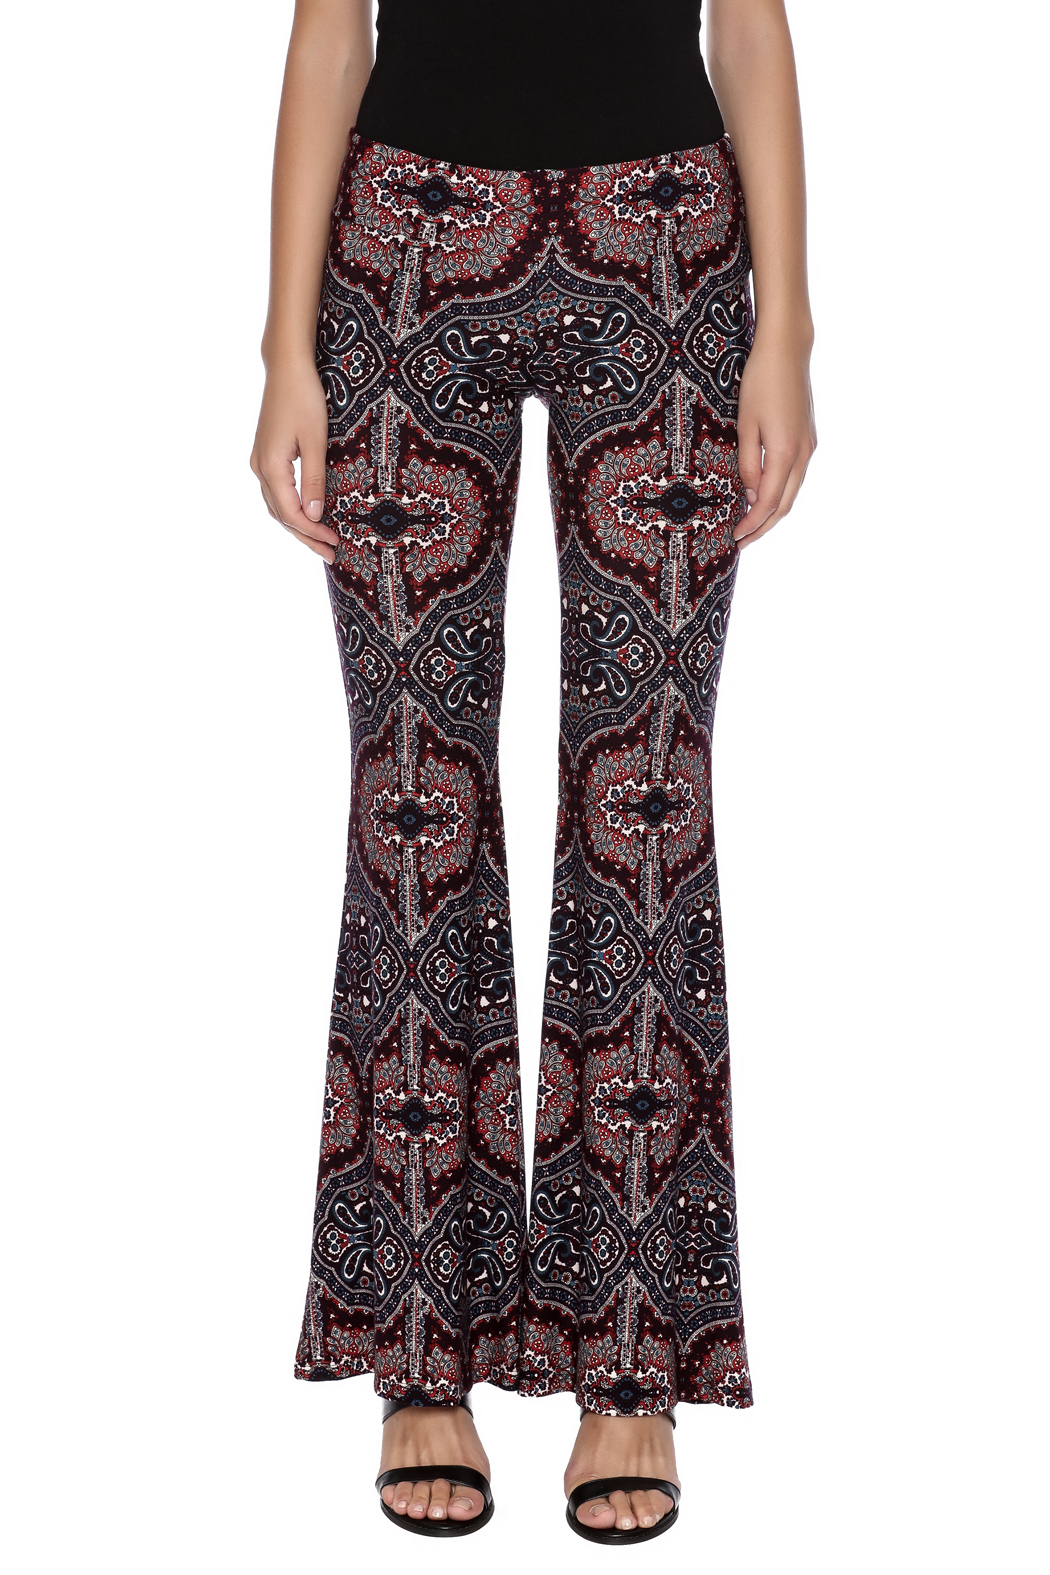 Veronica M Print Flare Pant - Side Cropped Image